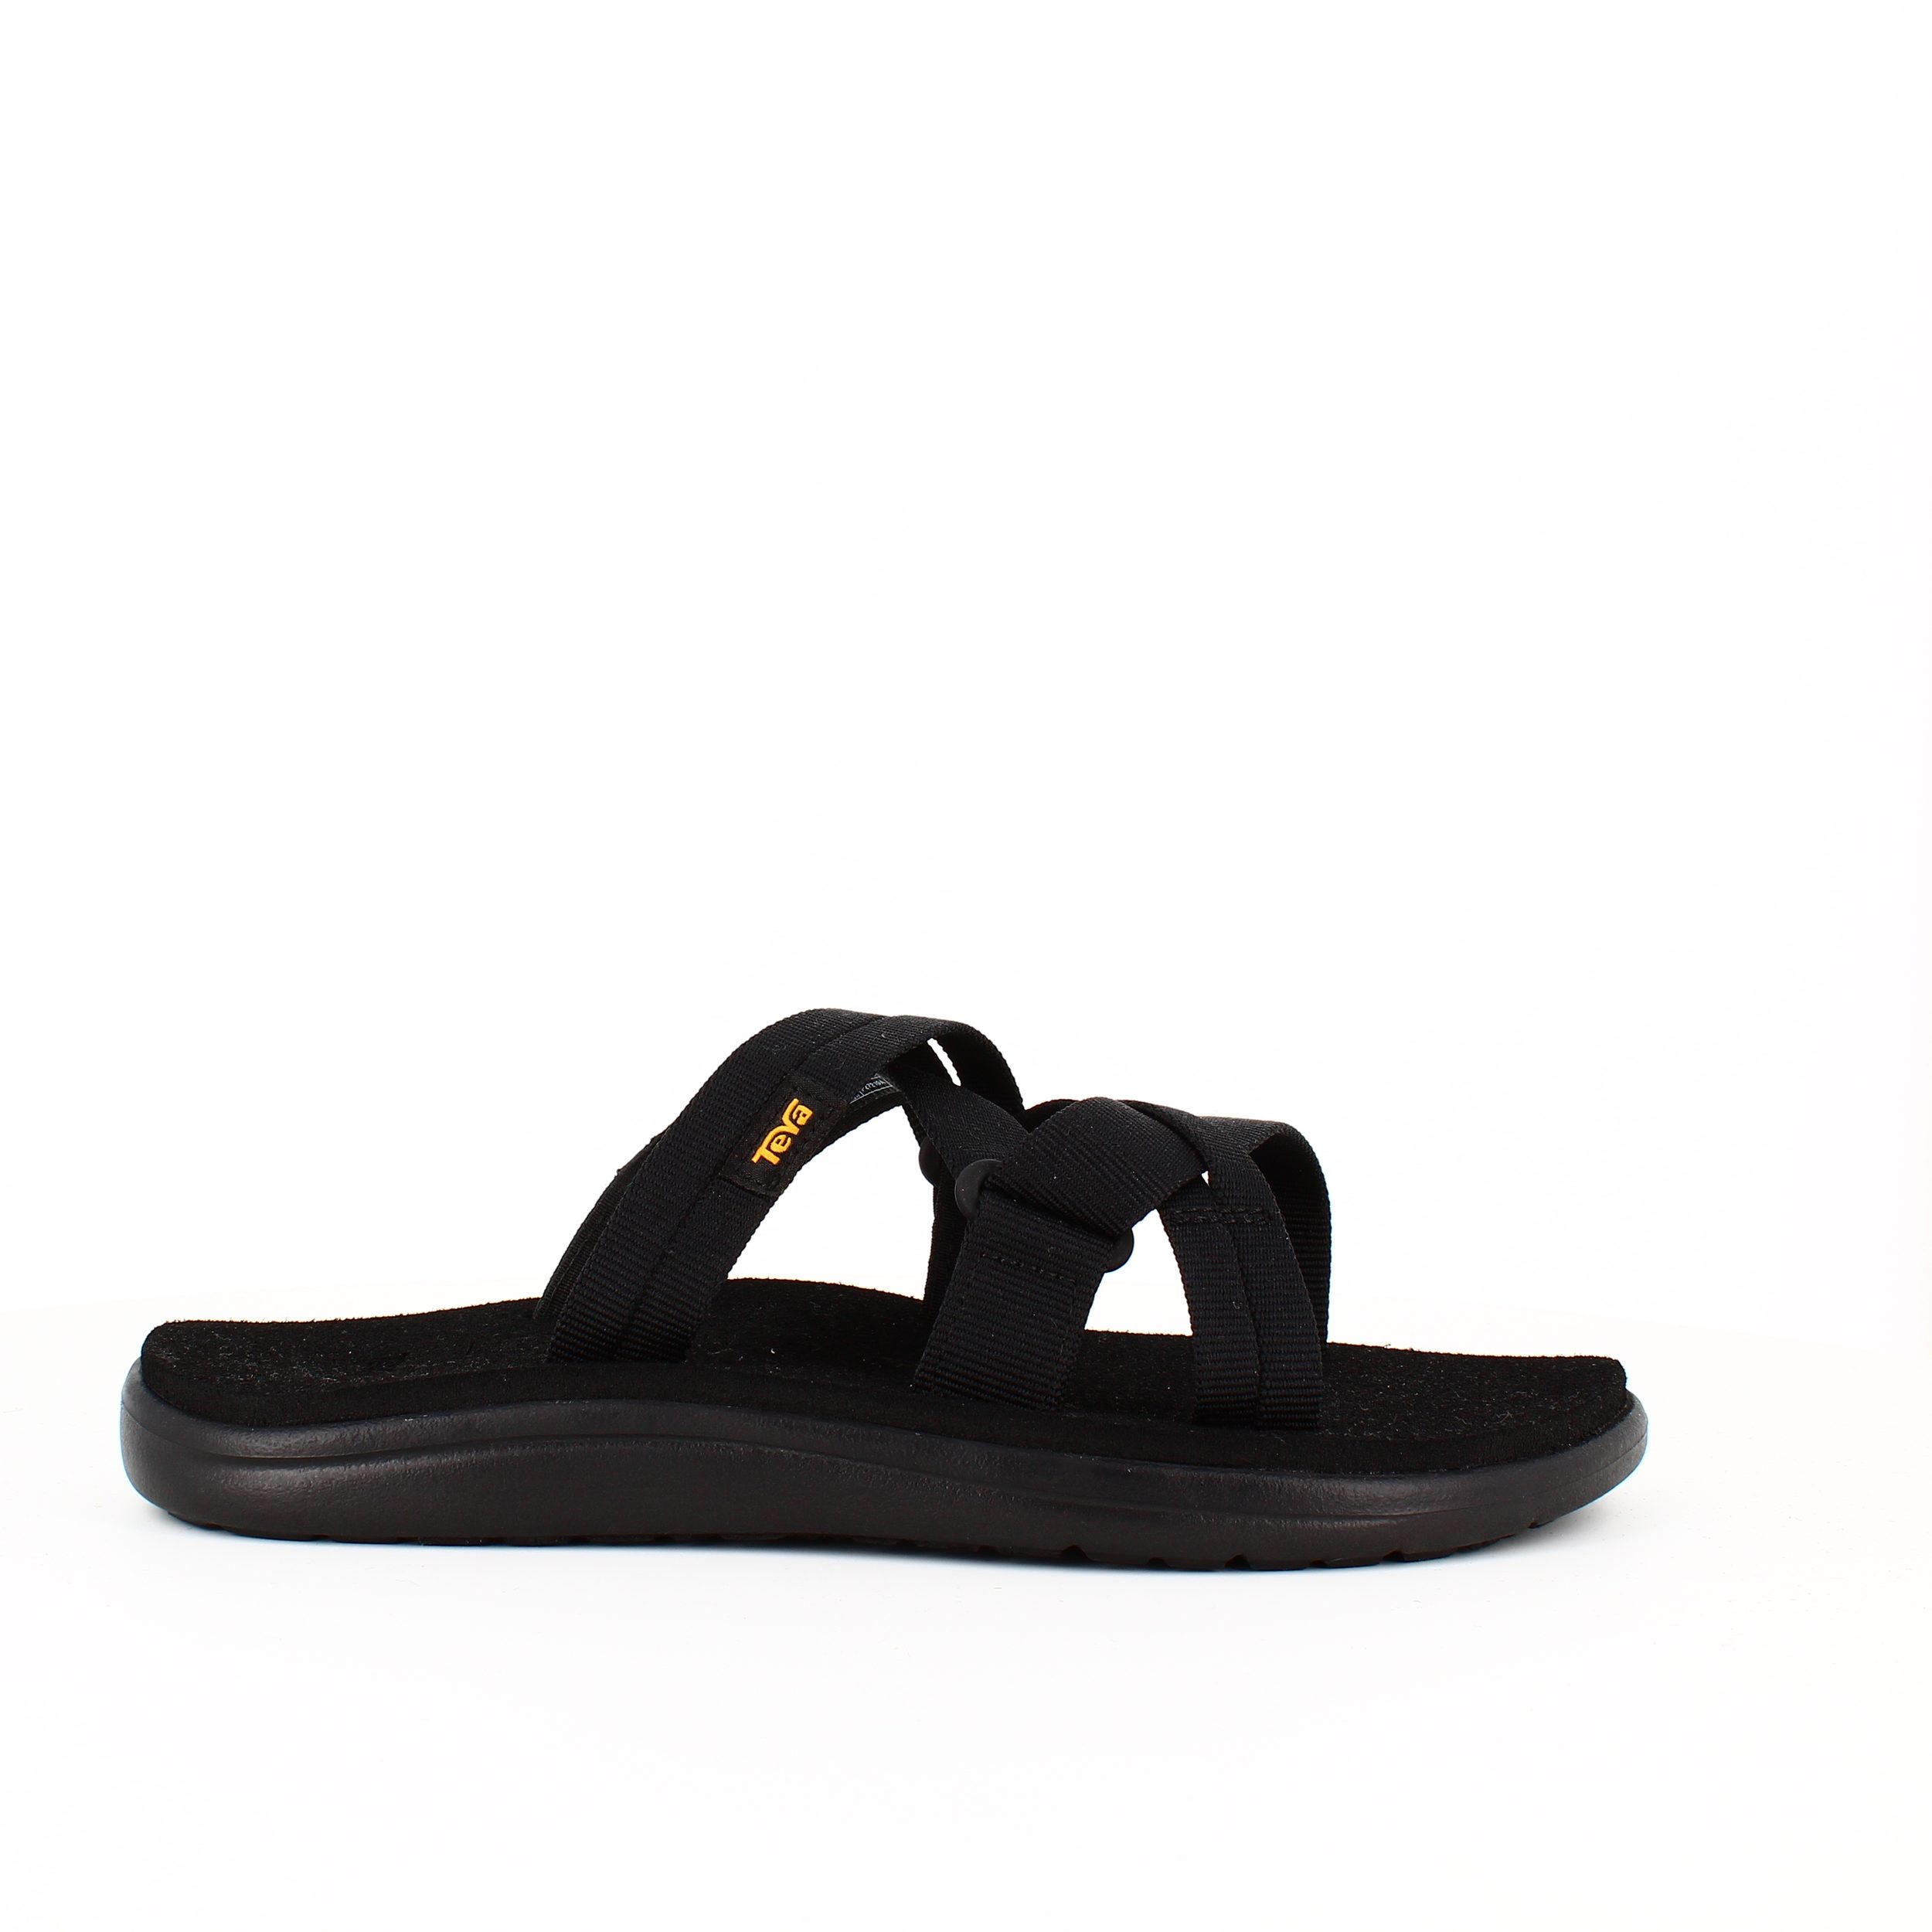 Image of   Teva sort slip in sandal - 37